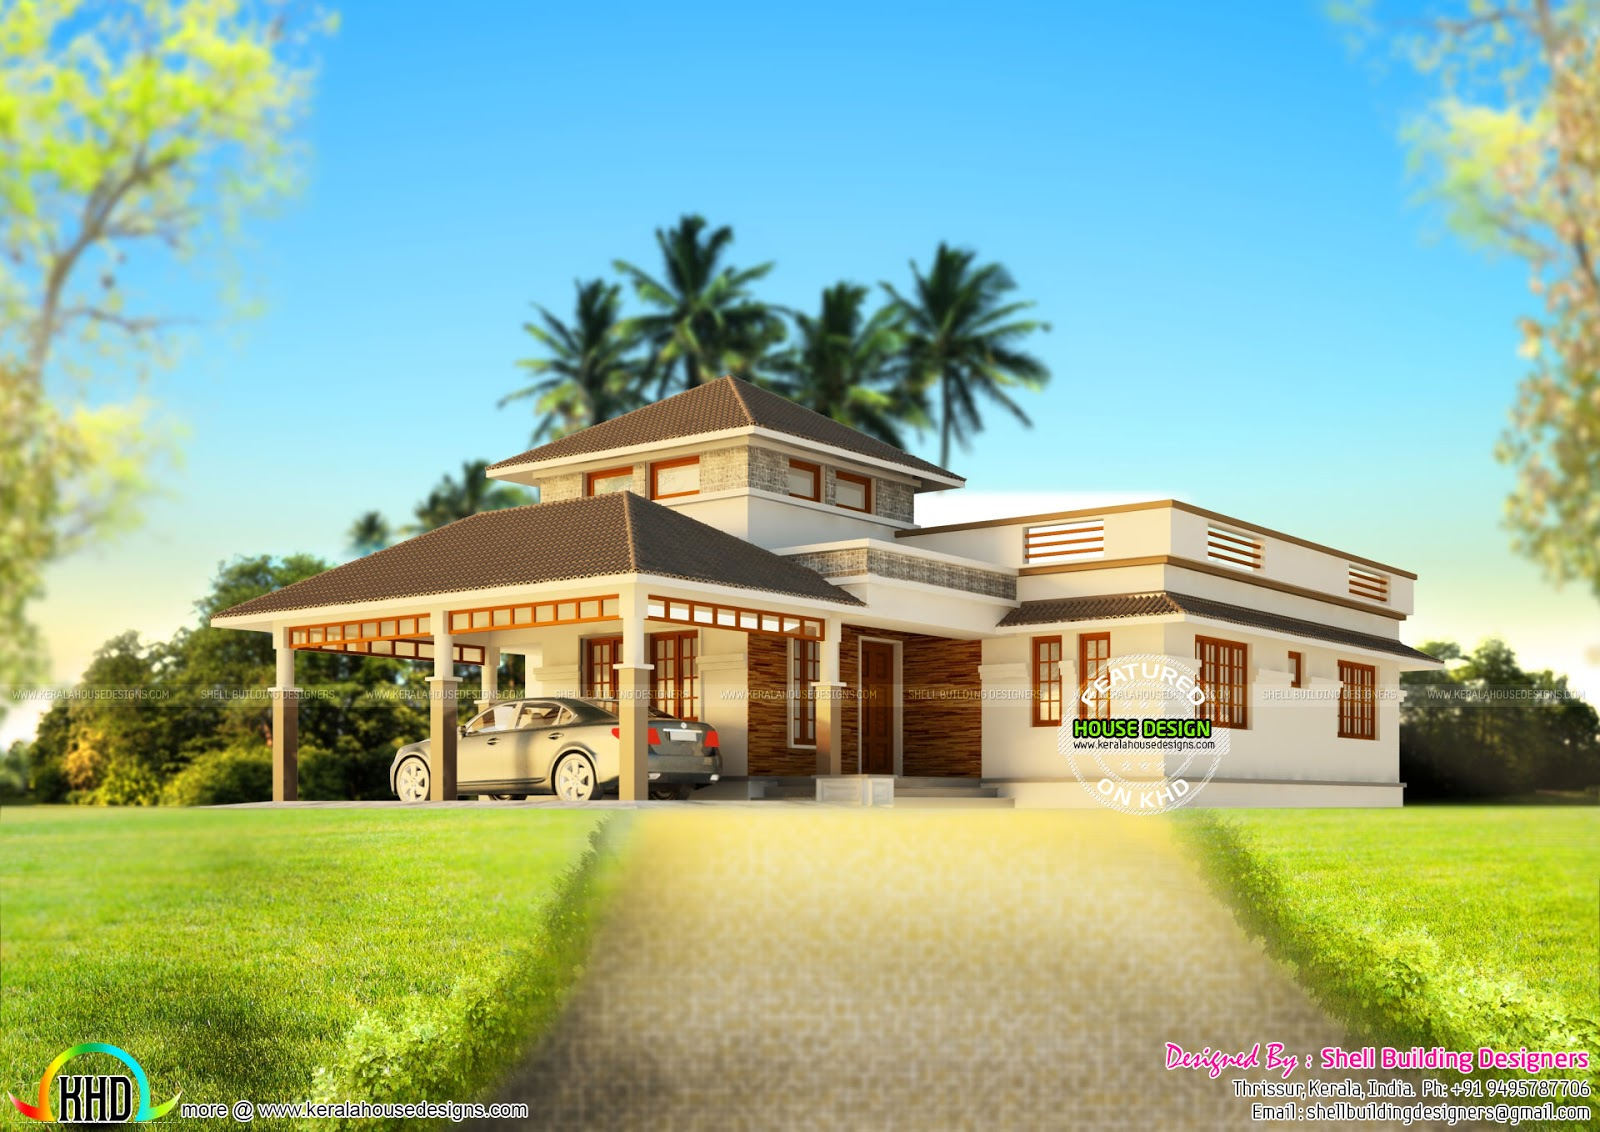 House design hilly area - House Design For Hill Area